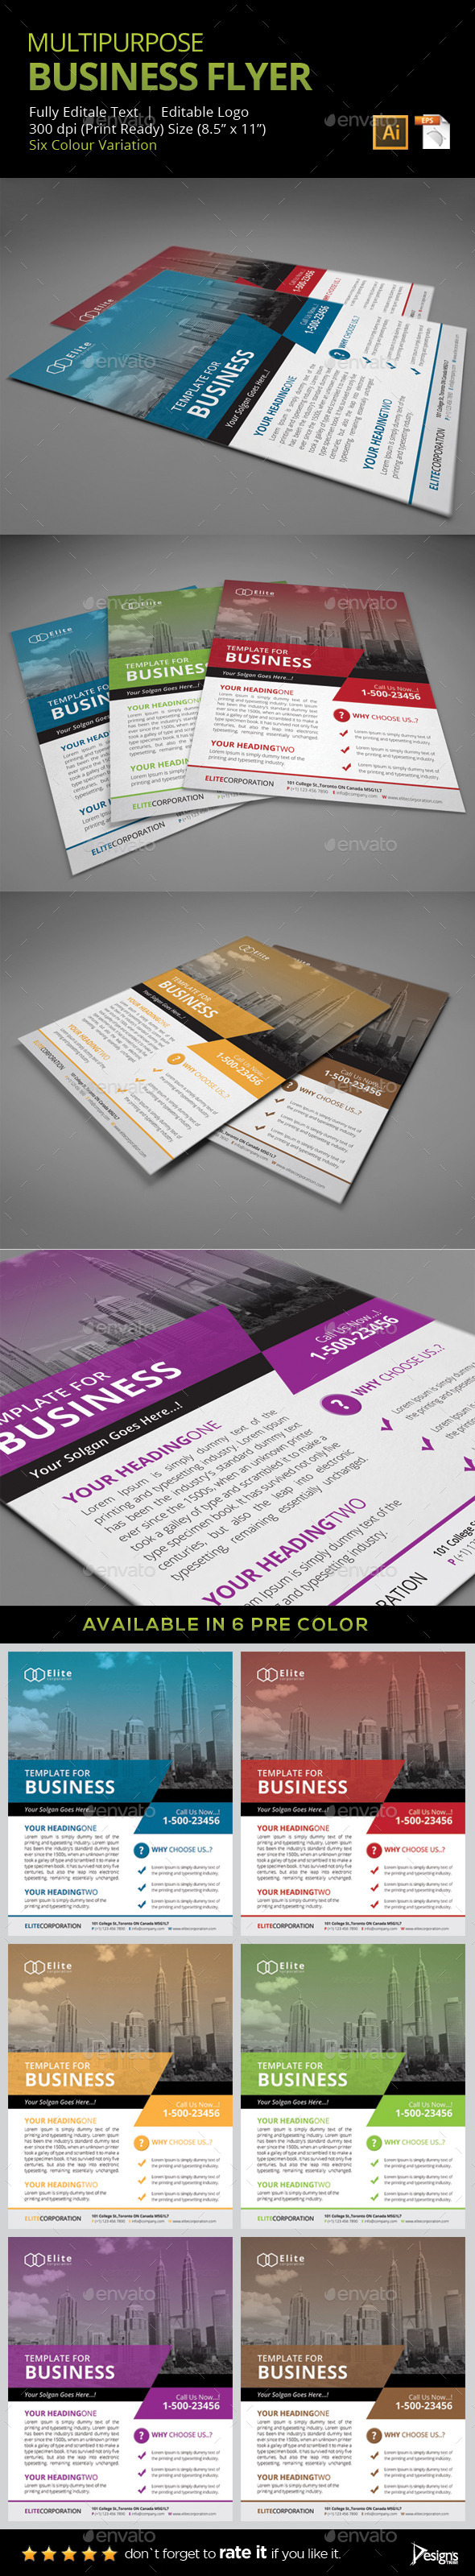 GraphicRiver Flyer Multipurpose Business Flyer 8 9329573